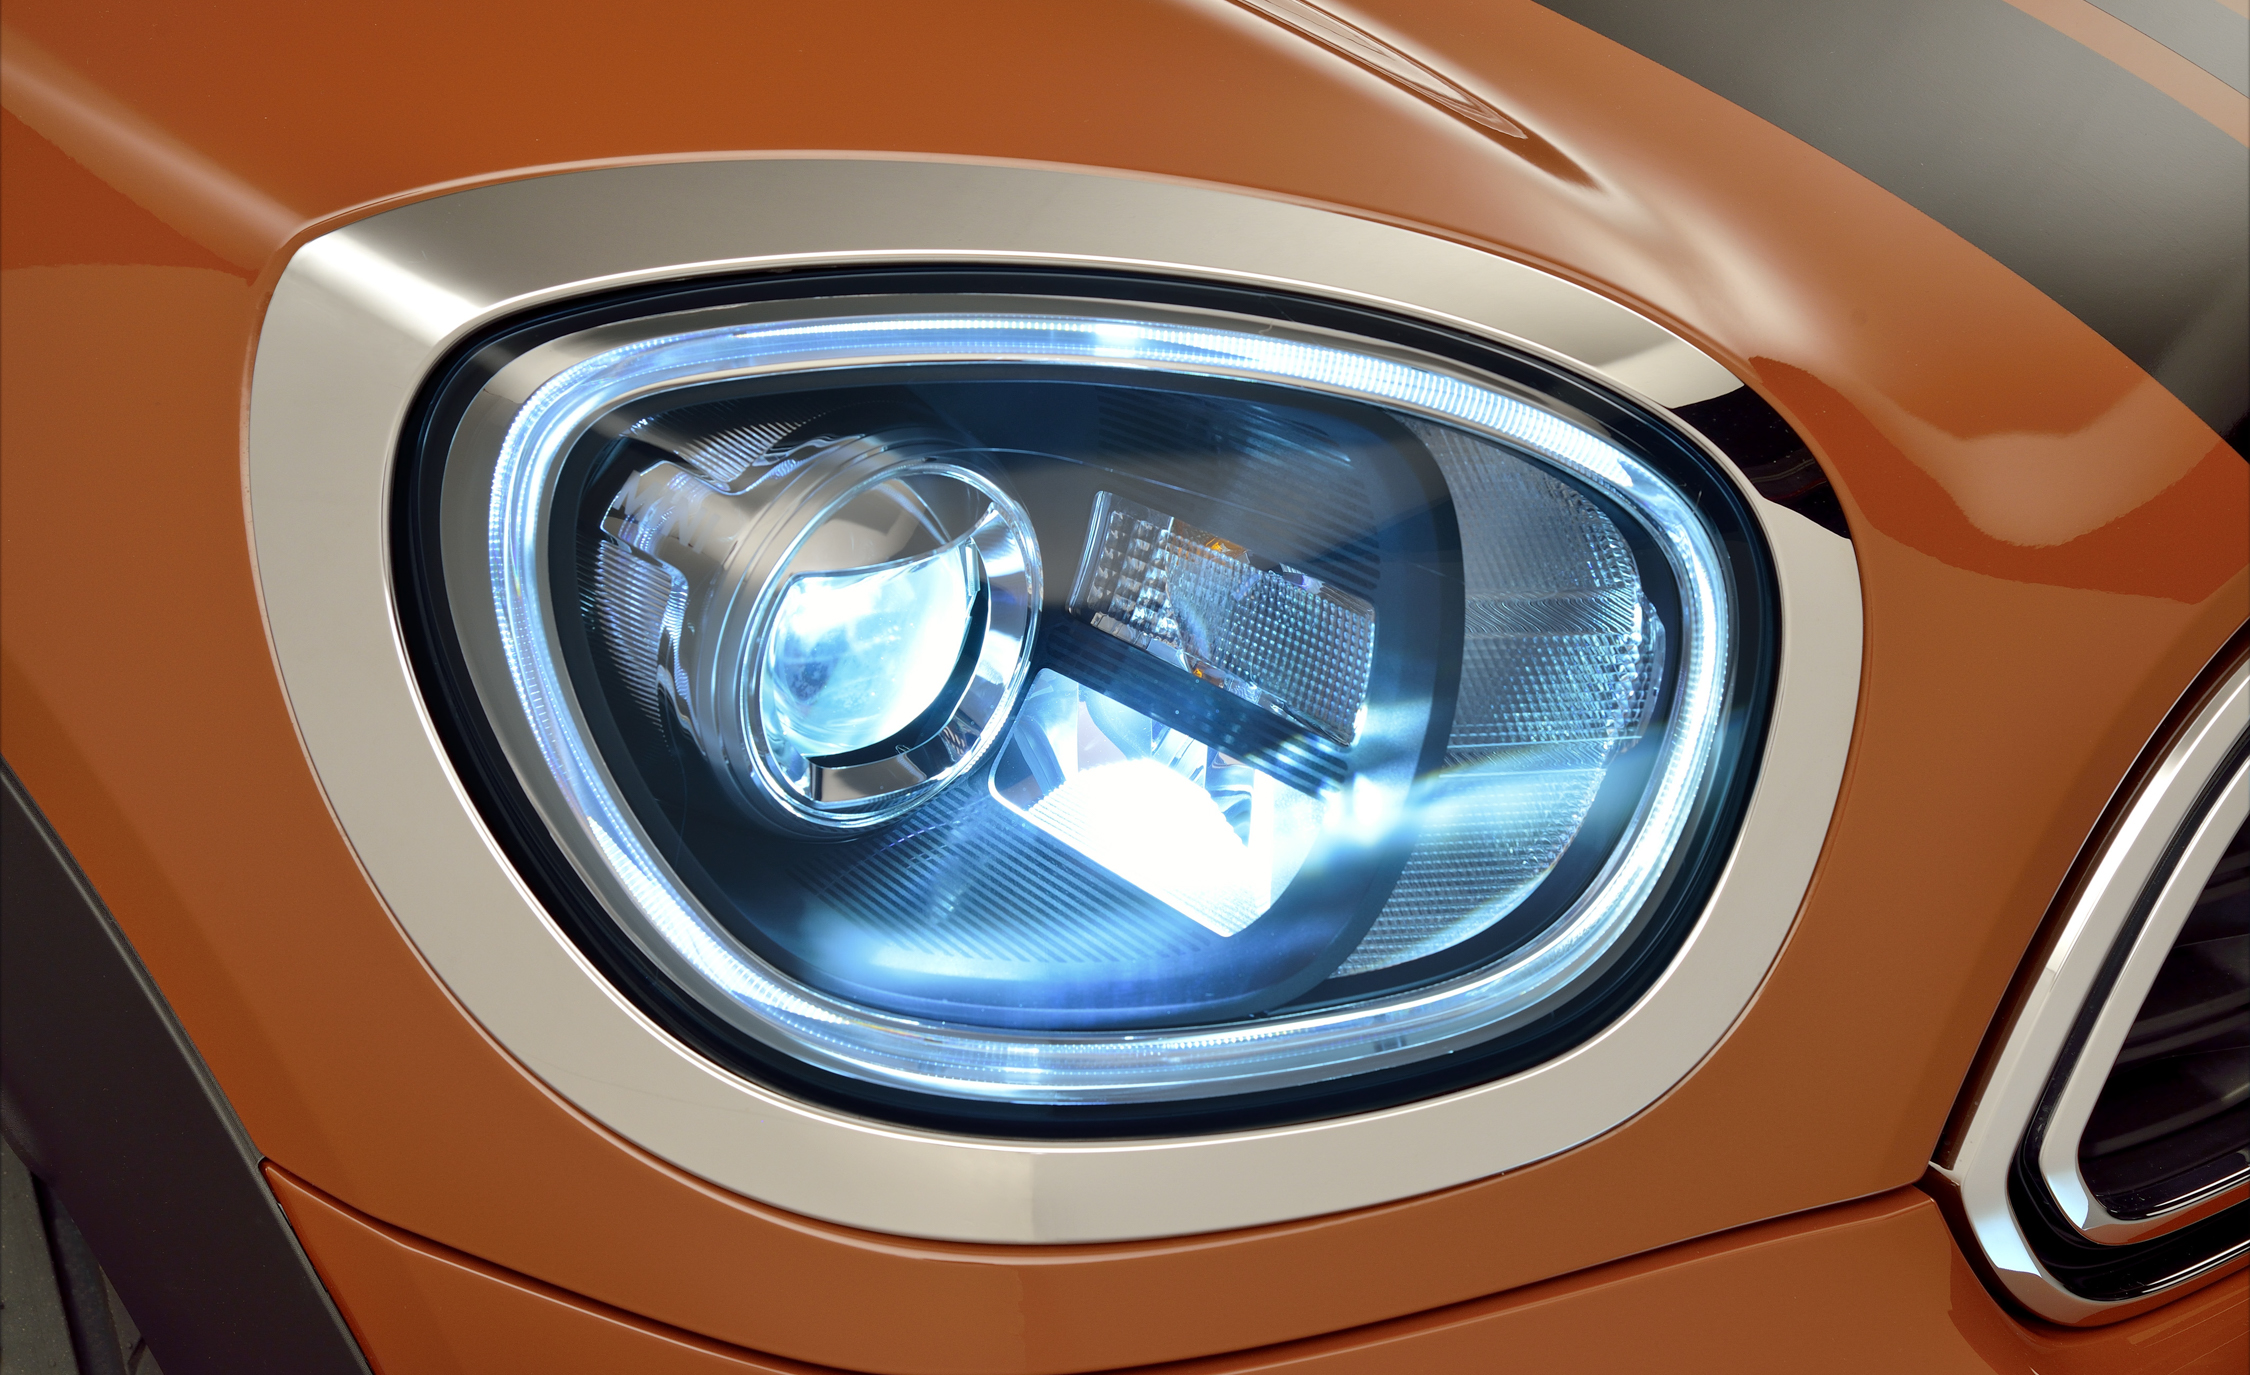 2017 Mini Countryman Cooper S All4 Exterior View Headlight (Photo 35 of 61)